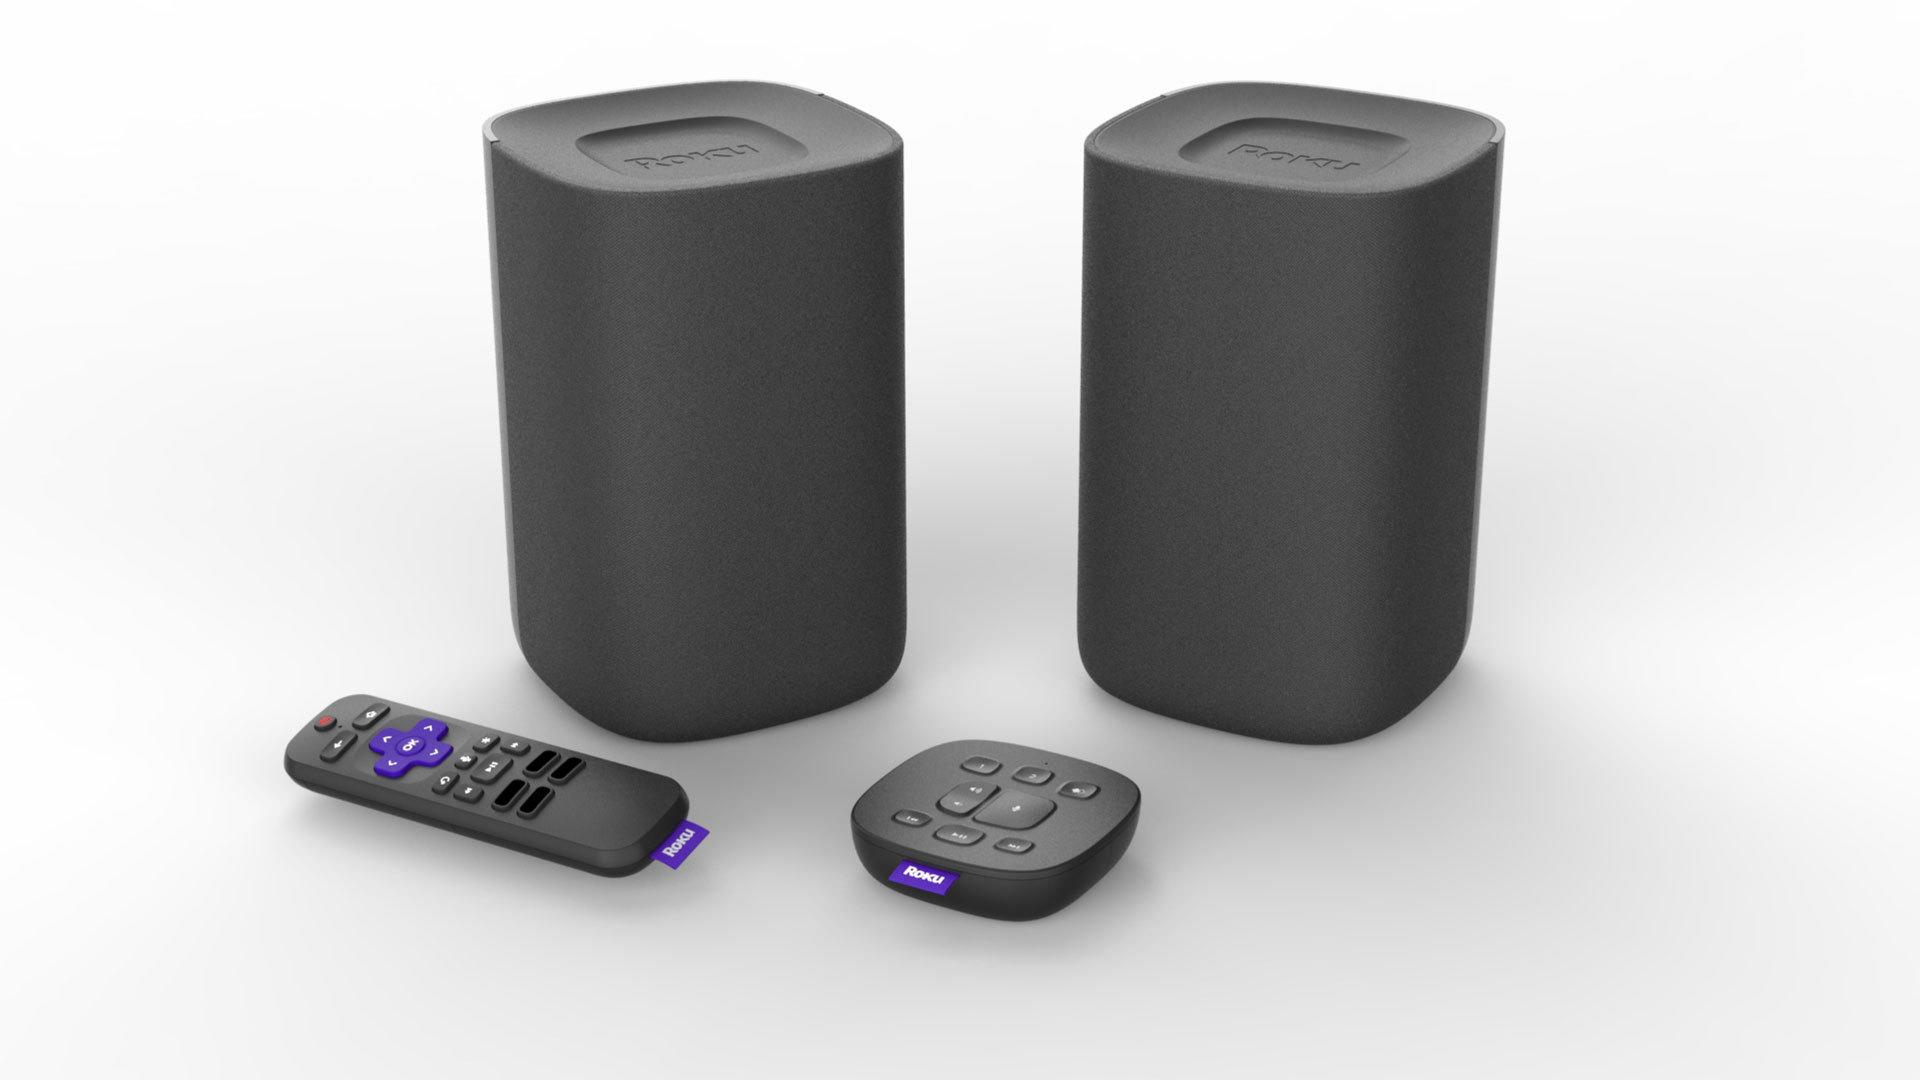 Roku's new wireless speakers offer great sound, but have one big flaw